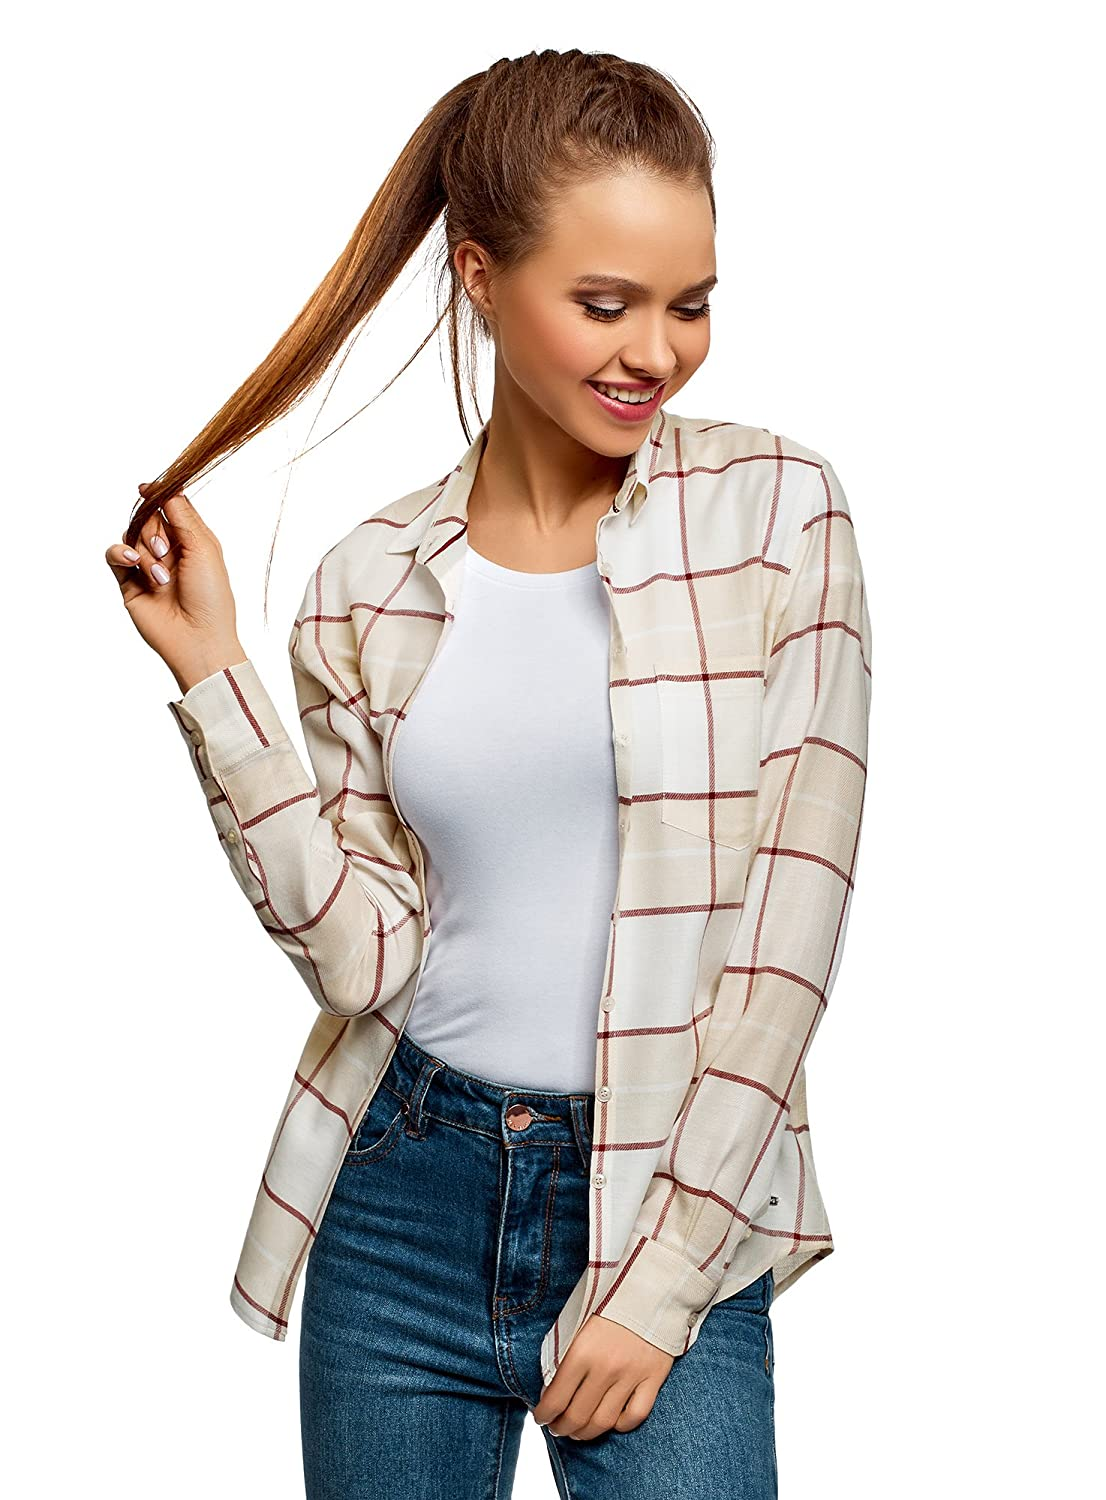 oodji Collection Femme Blouse Coupe Ample avec Une Poche Poitrine RIFICZECH s.r.o. 21411114